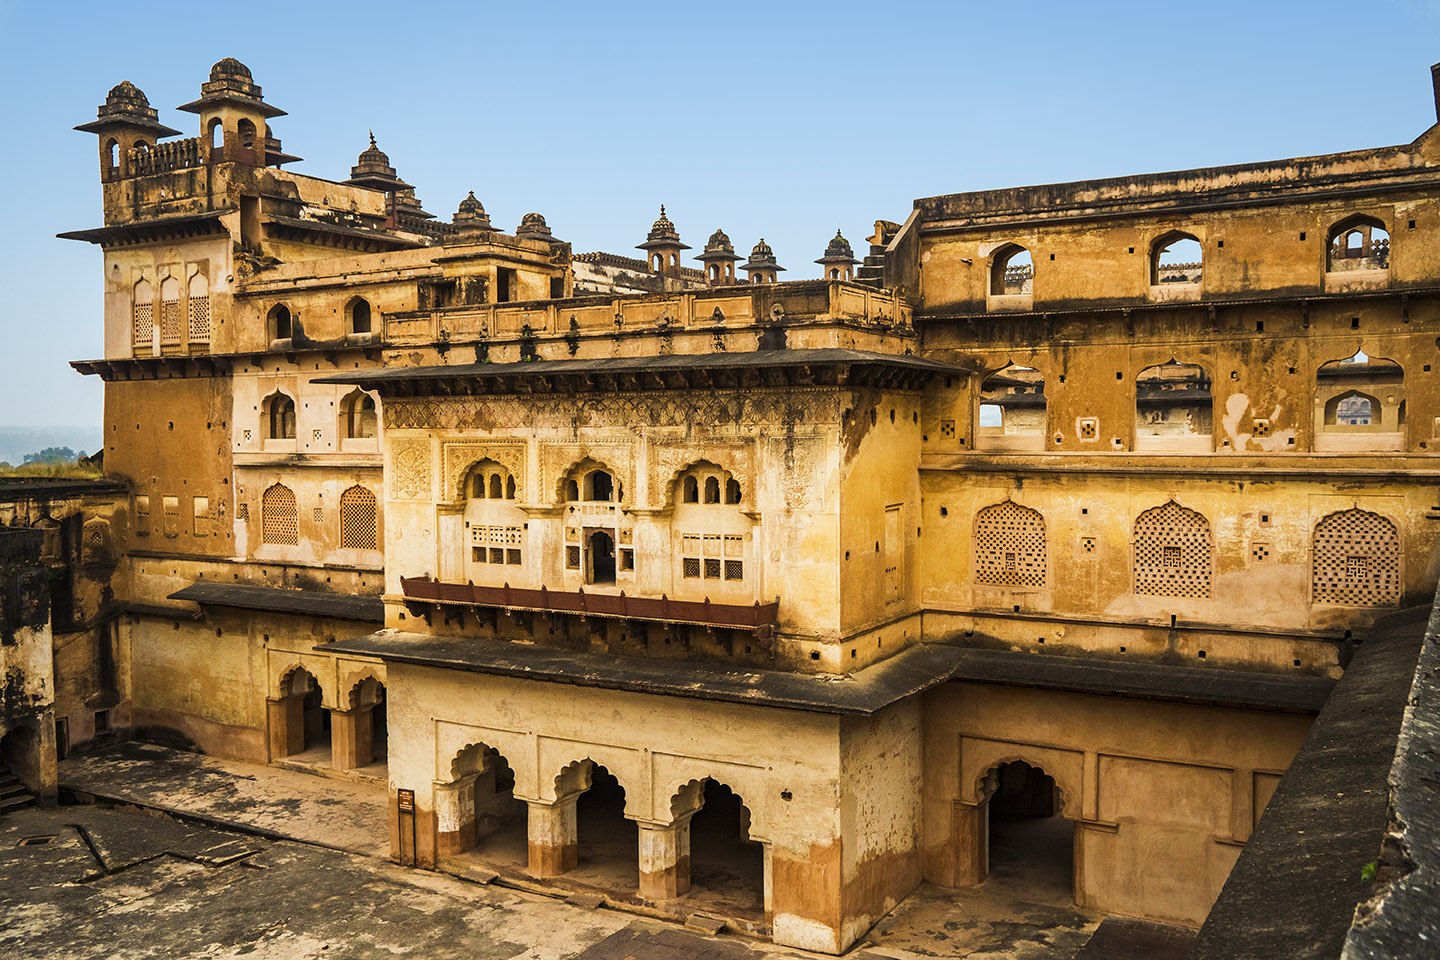 Built in 16th century, the Raja Mahal in Orchha has intricate murals of social and religious themes of gods, mythical animals, and people